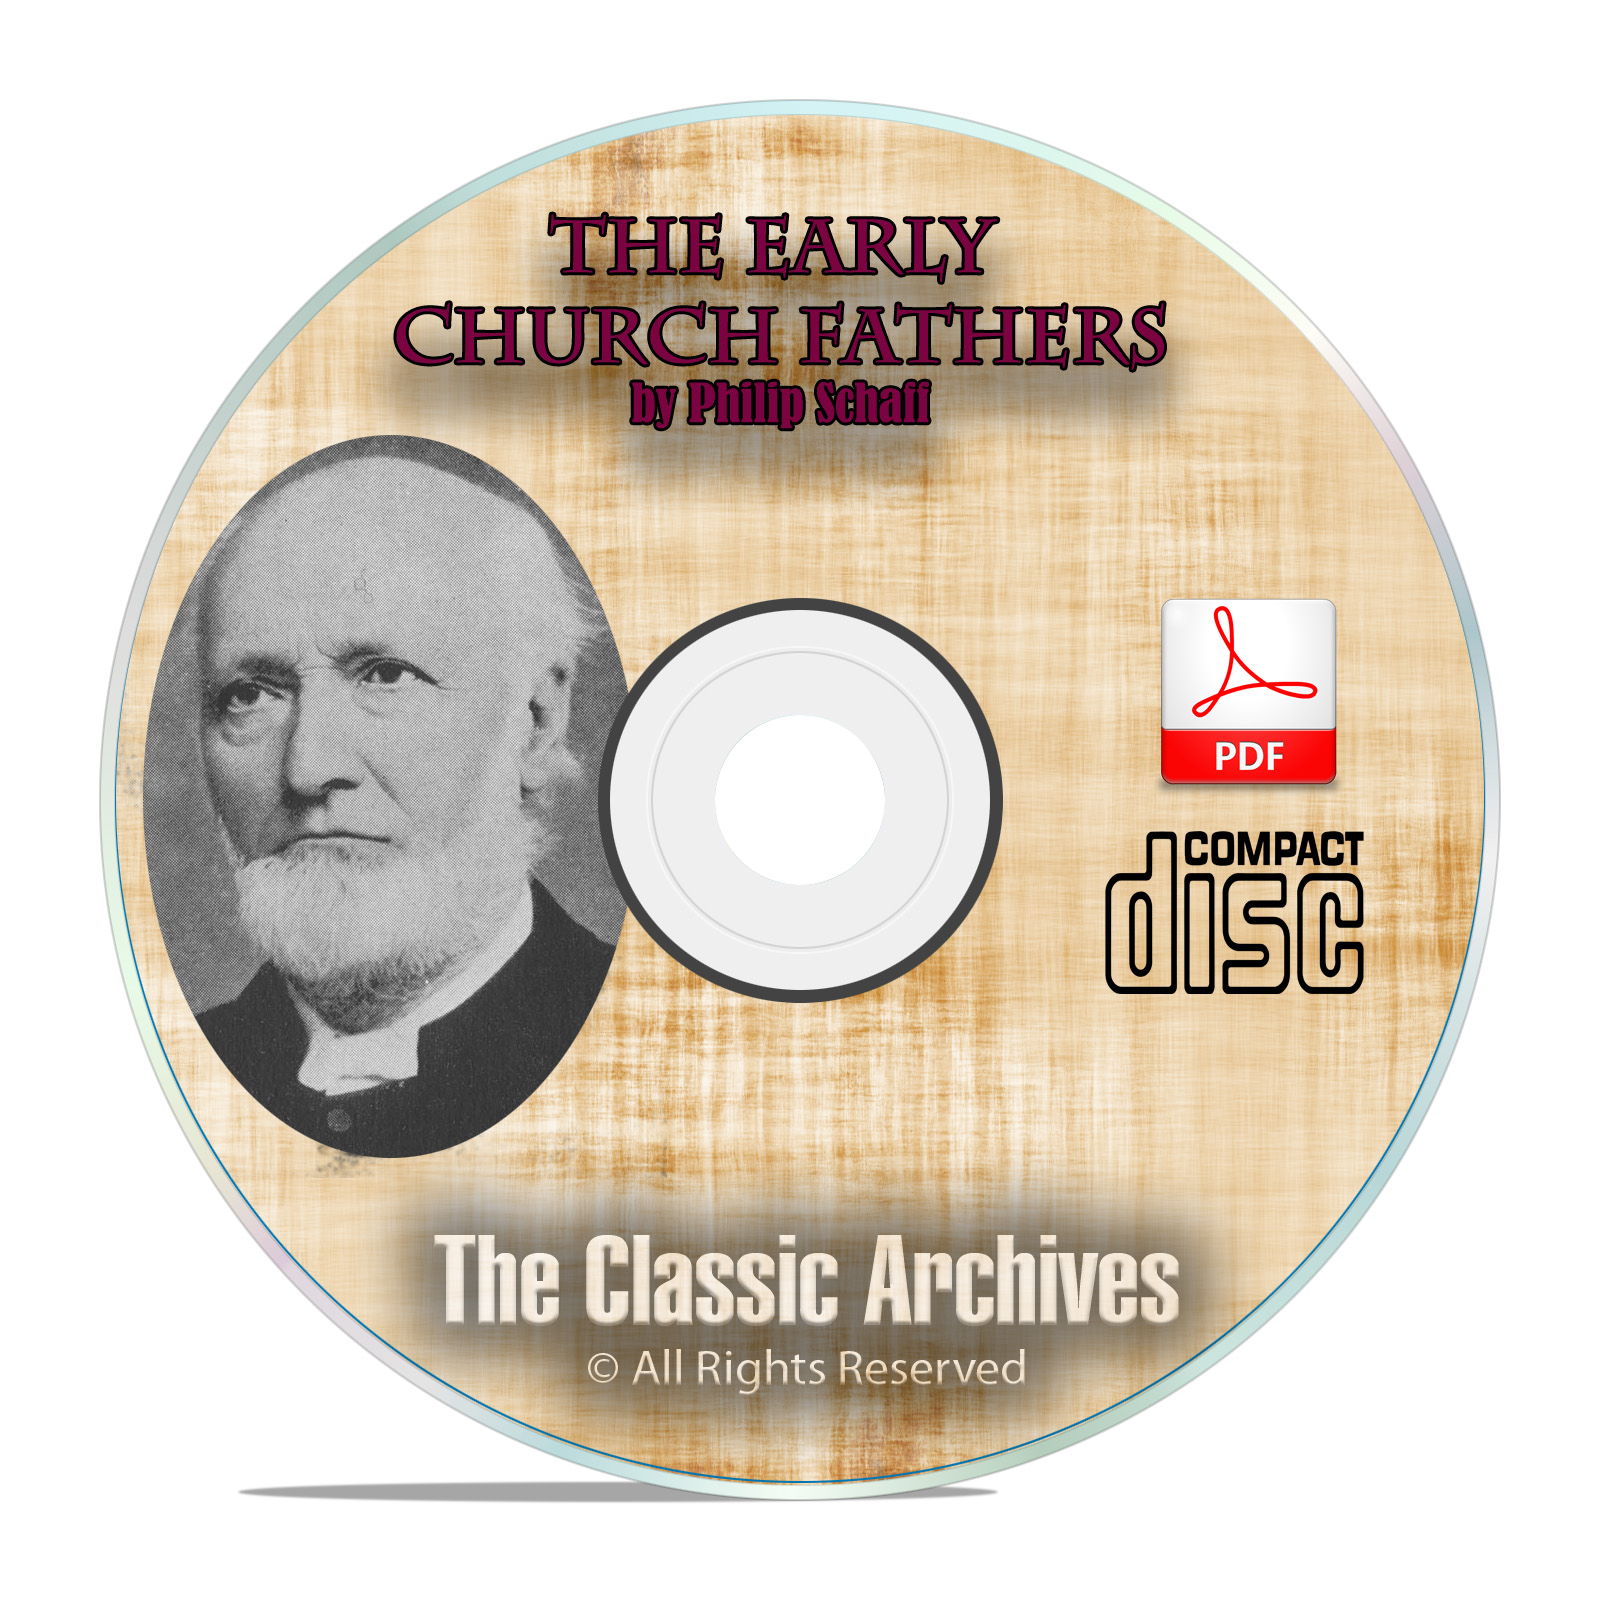 The Early Church Fathers, by Philip Schaff, 38 Volume Bible Study on CD-ROM